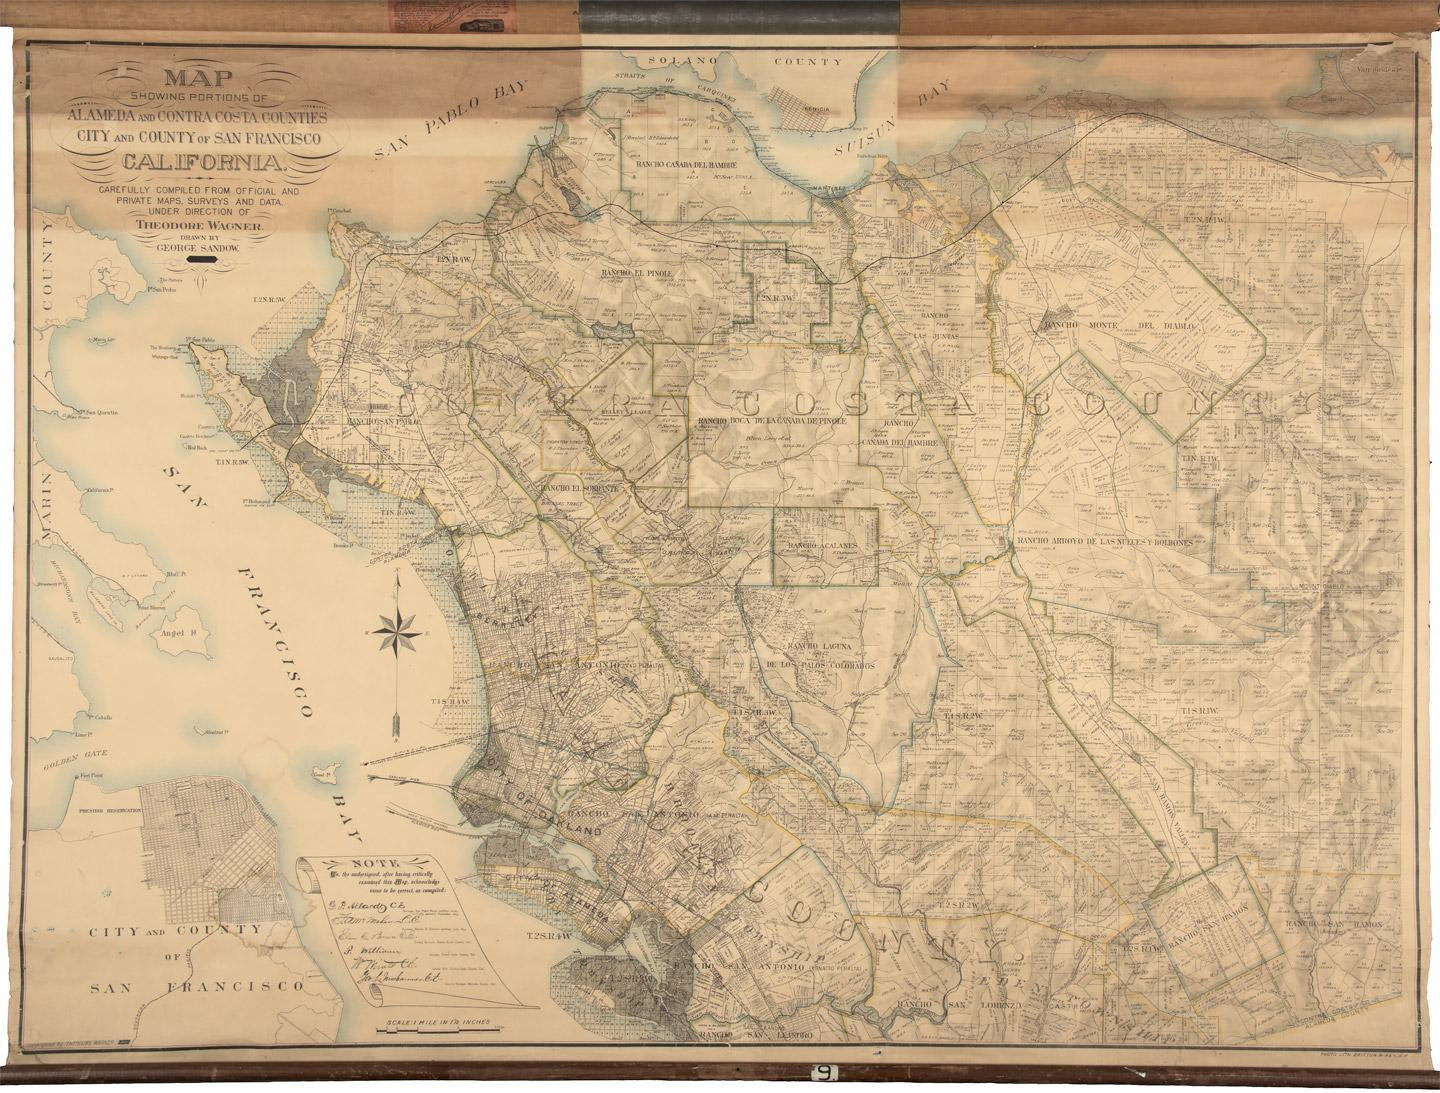 Image of: Map Showing Portions Of Alameda And Contra Costa Counties City And County Of San Francisco California Carefully Compiled From Official And Private Maps Surveys And Data Price Estimate 1500 2000